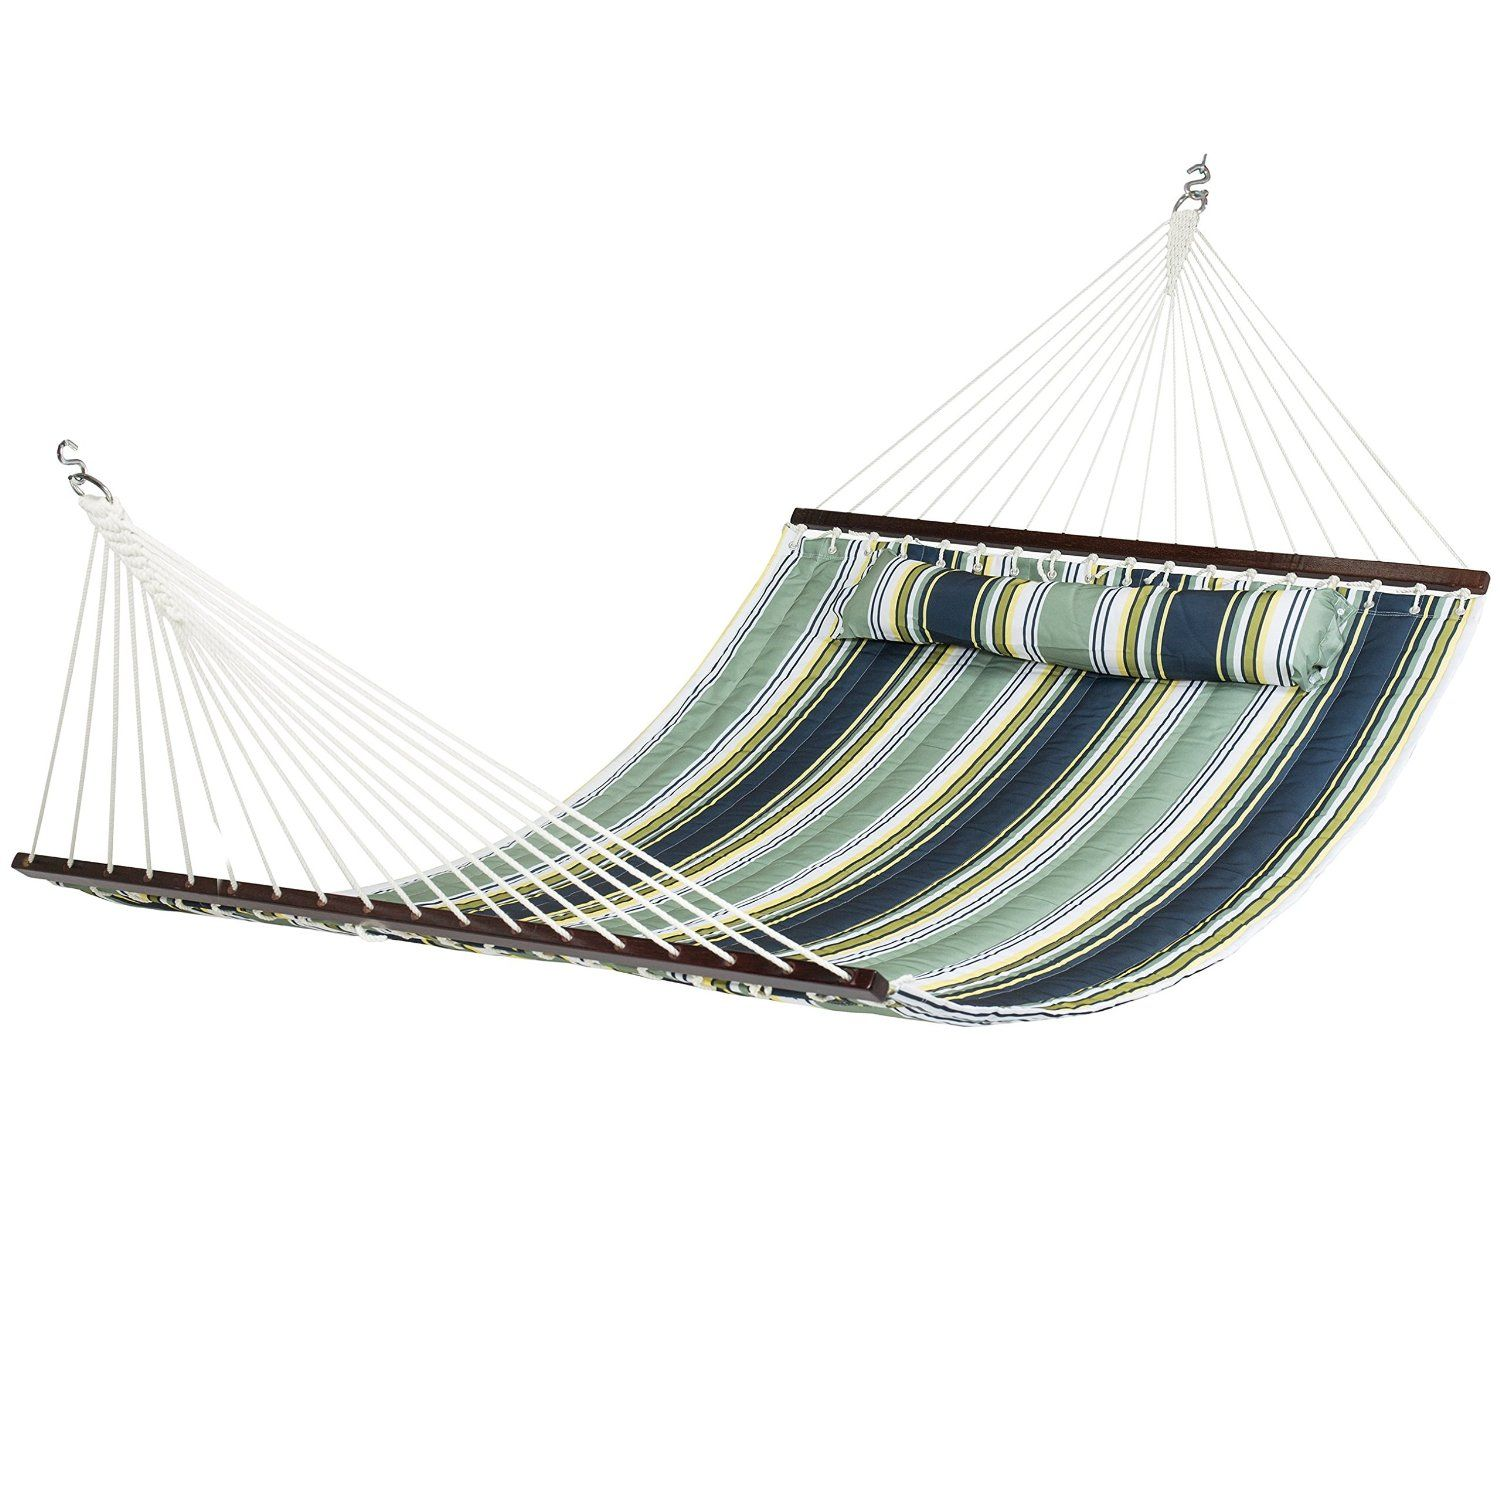 portable camping high or hammock garden stripe buy double person hang product bed ups outdoor quality travel fedex nvie swing from canvas